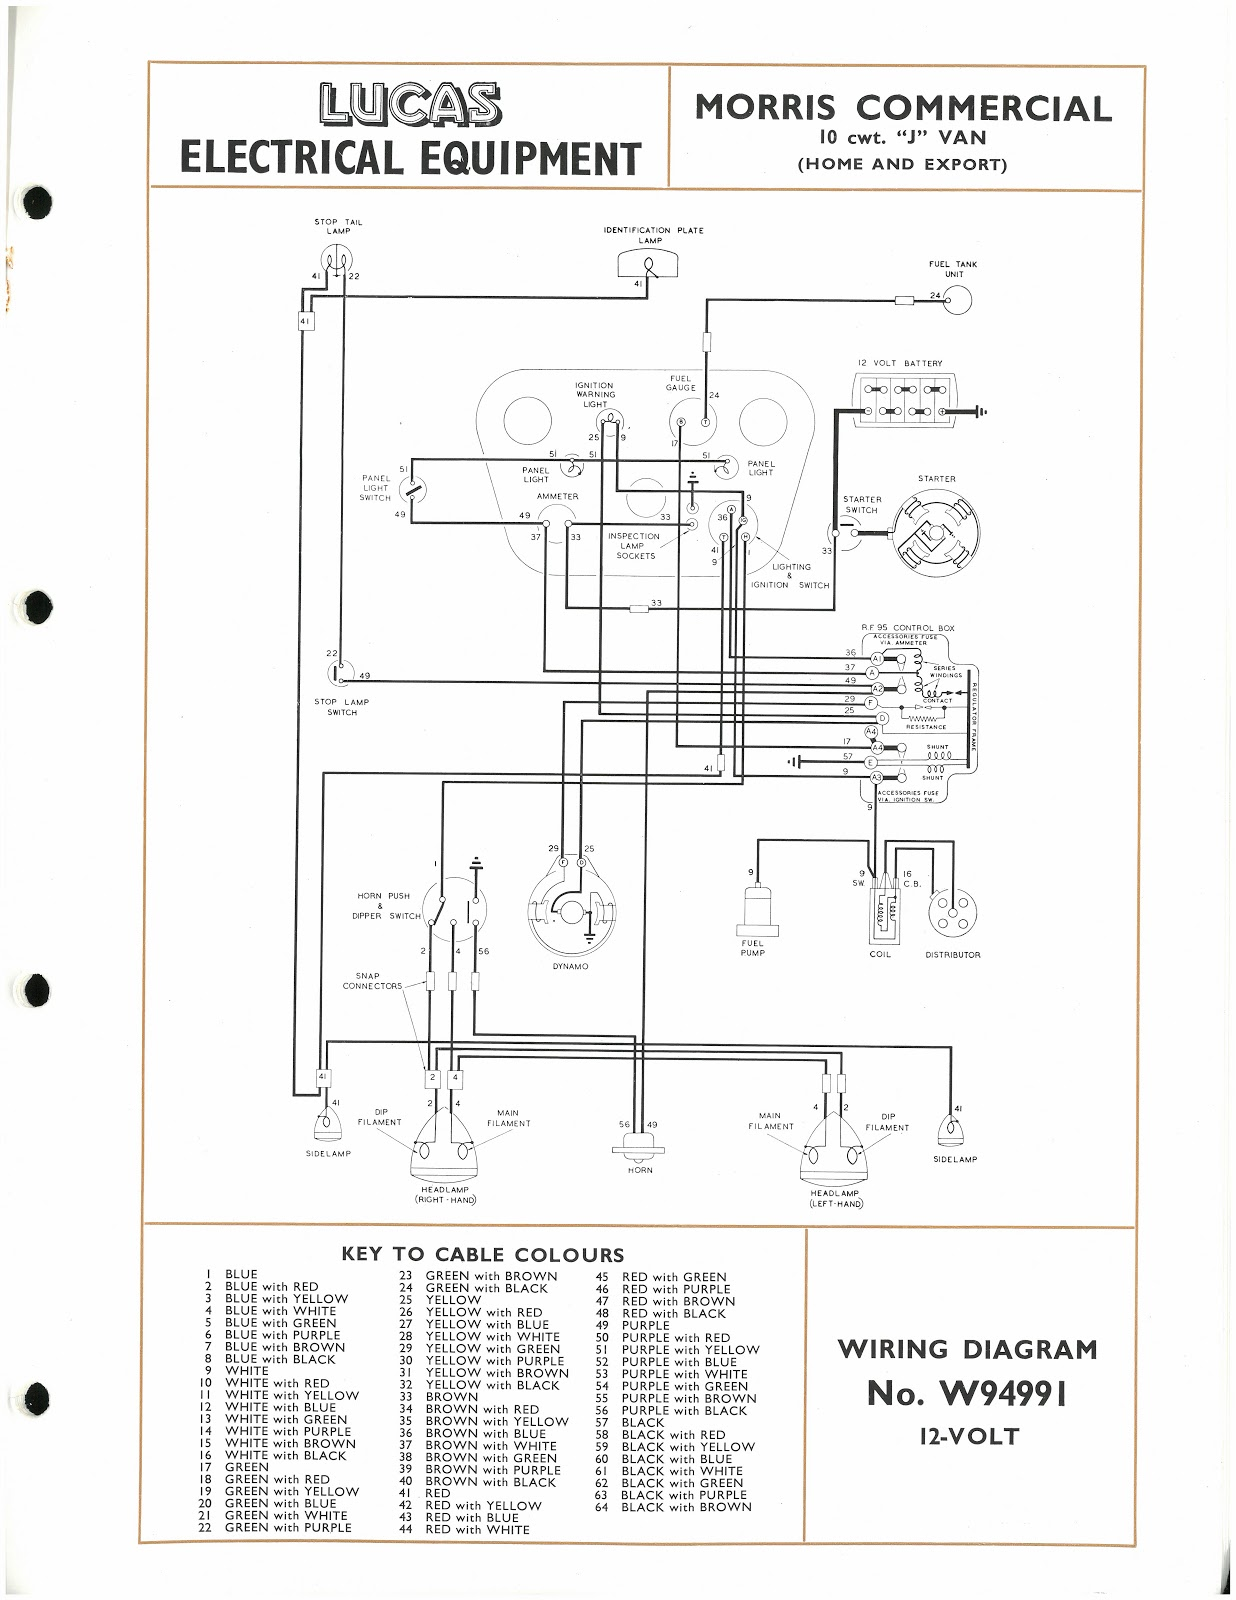 mga tail light wiring mga image wiring diagram mga wiring diagram mga auto wiring diagram schematic on mga tail light wiring